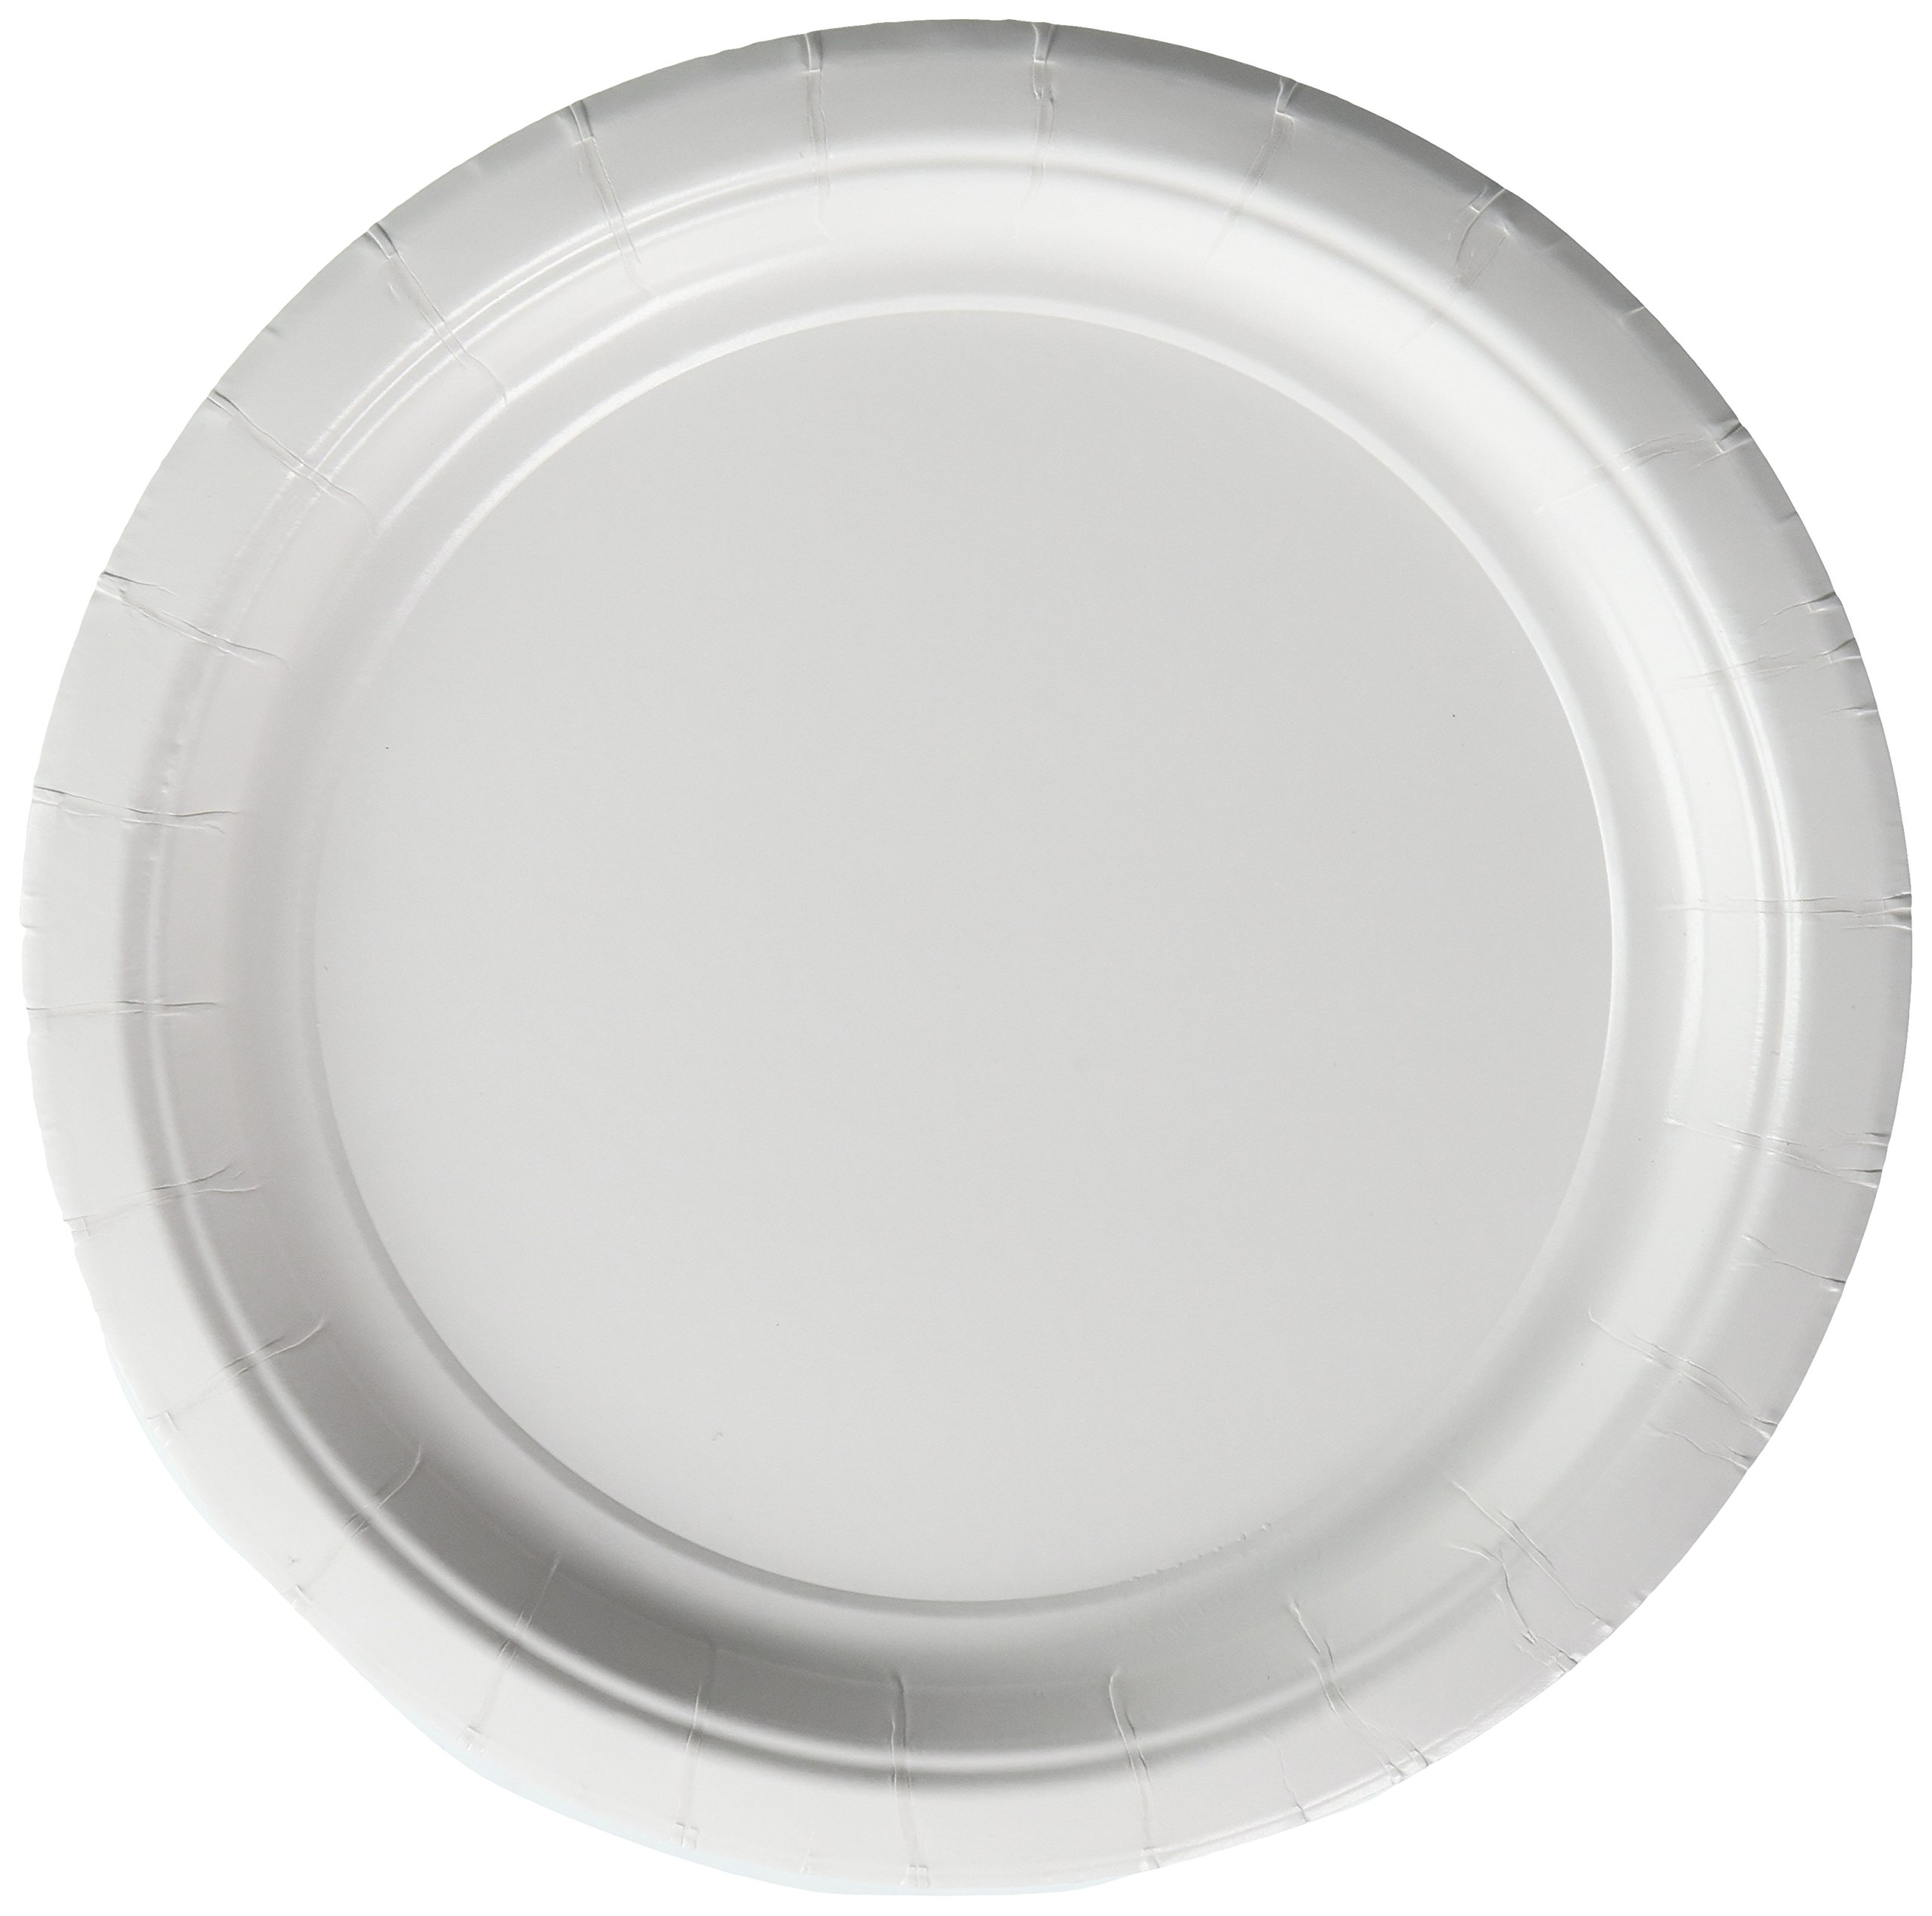 Amscan Durable Round Dessert Plates Big Bundle Party Tableware Paper, 7'', Pack of 50 Childrens, Frosty White, 7''